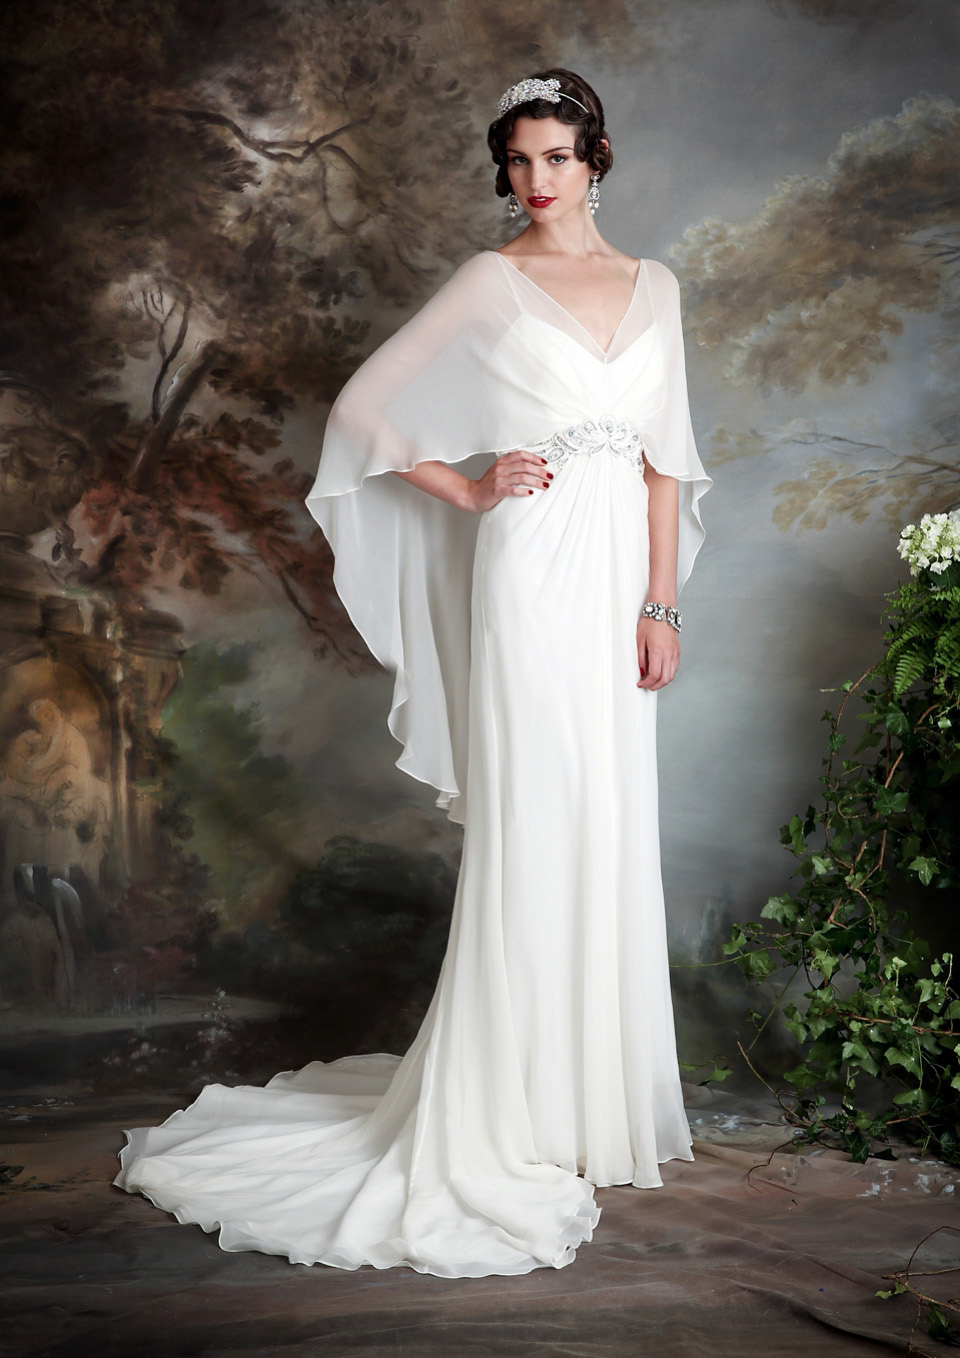 076d8faea7d2 wpid Eliza Jane Howell beaded art deco wedding dresses - Eliza Jane Howell  - Elegant Art